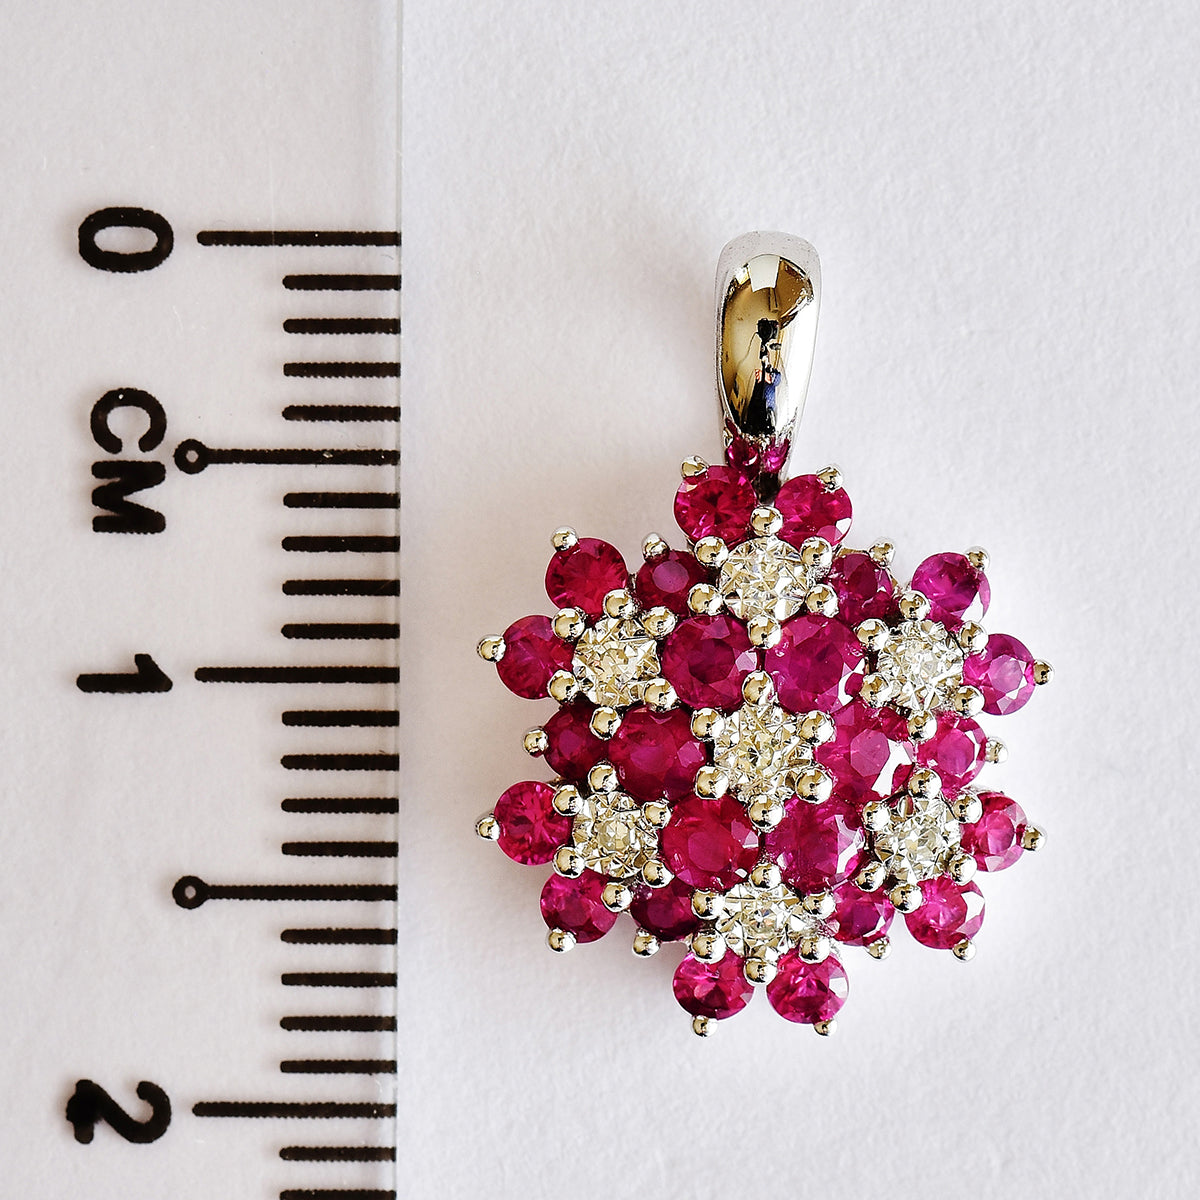 9K SOLID WHITE GOLD 0.85CT NATURAL RUBY CLUSTER PENDANT WITH SEVEN DIAMONDS.